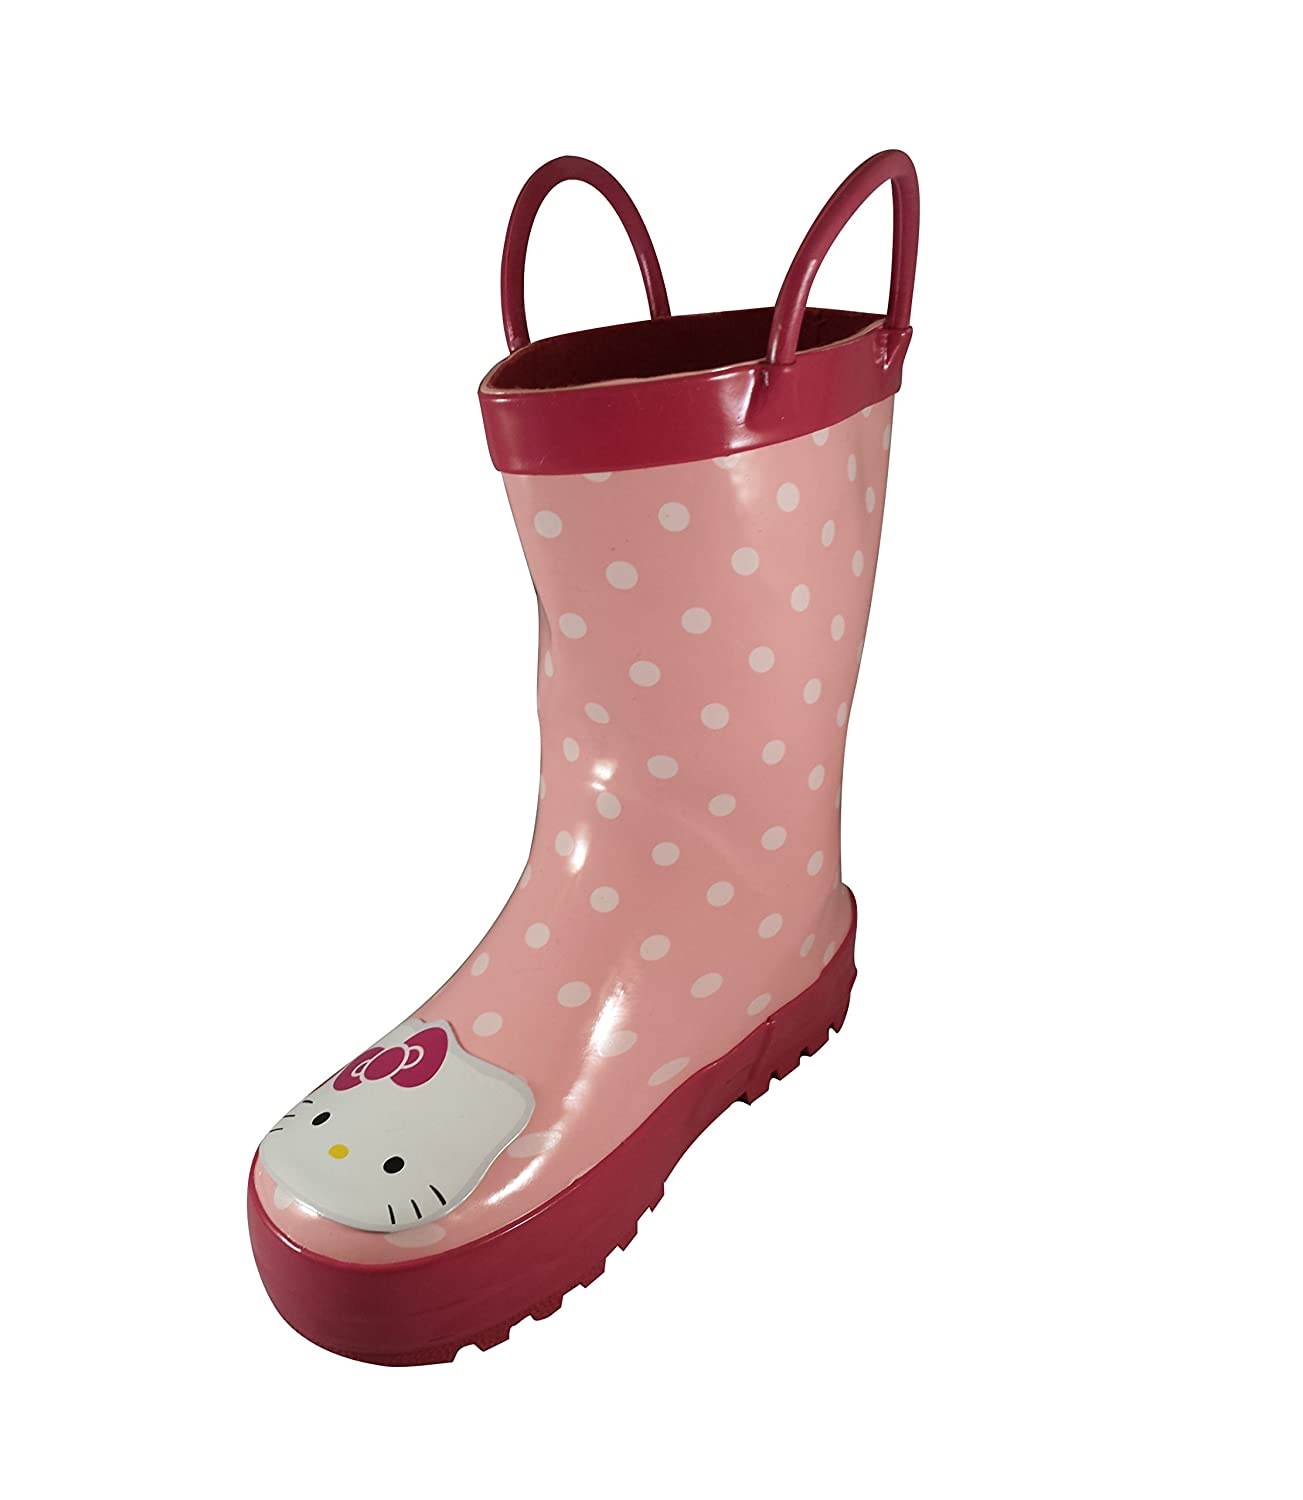 HELLO KITTY POLKA DOT PINK RAIN BOOT (TODDLER/LITTLE KID)